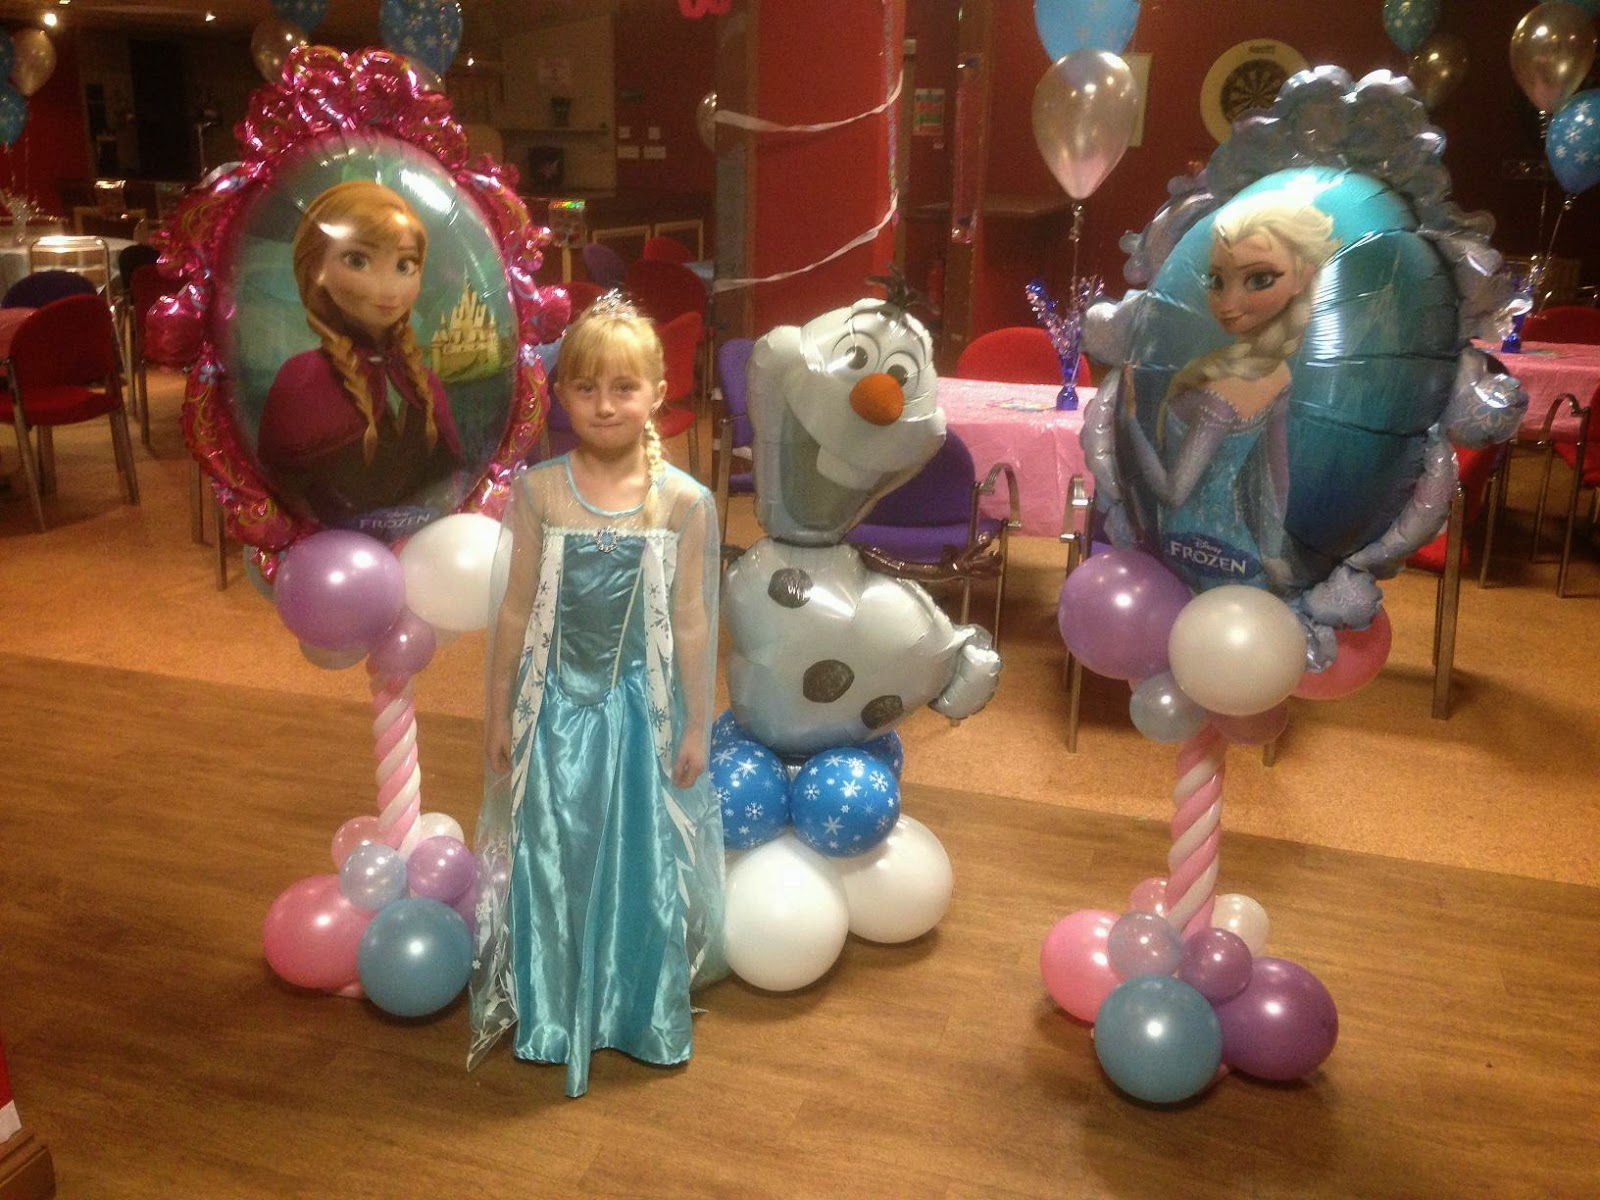 Enchanted weddings events bristol frozen party balloon for Balloon decoration ideas for kids party